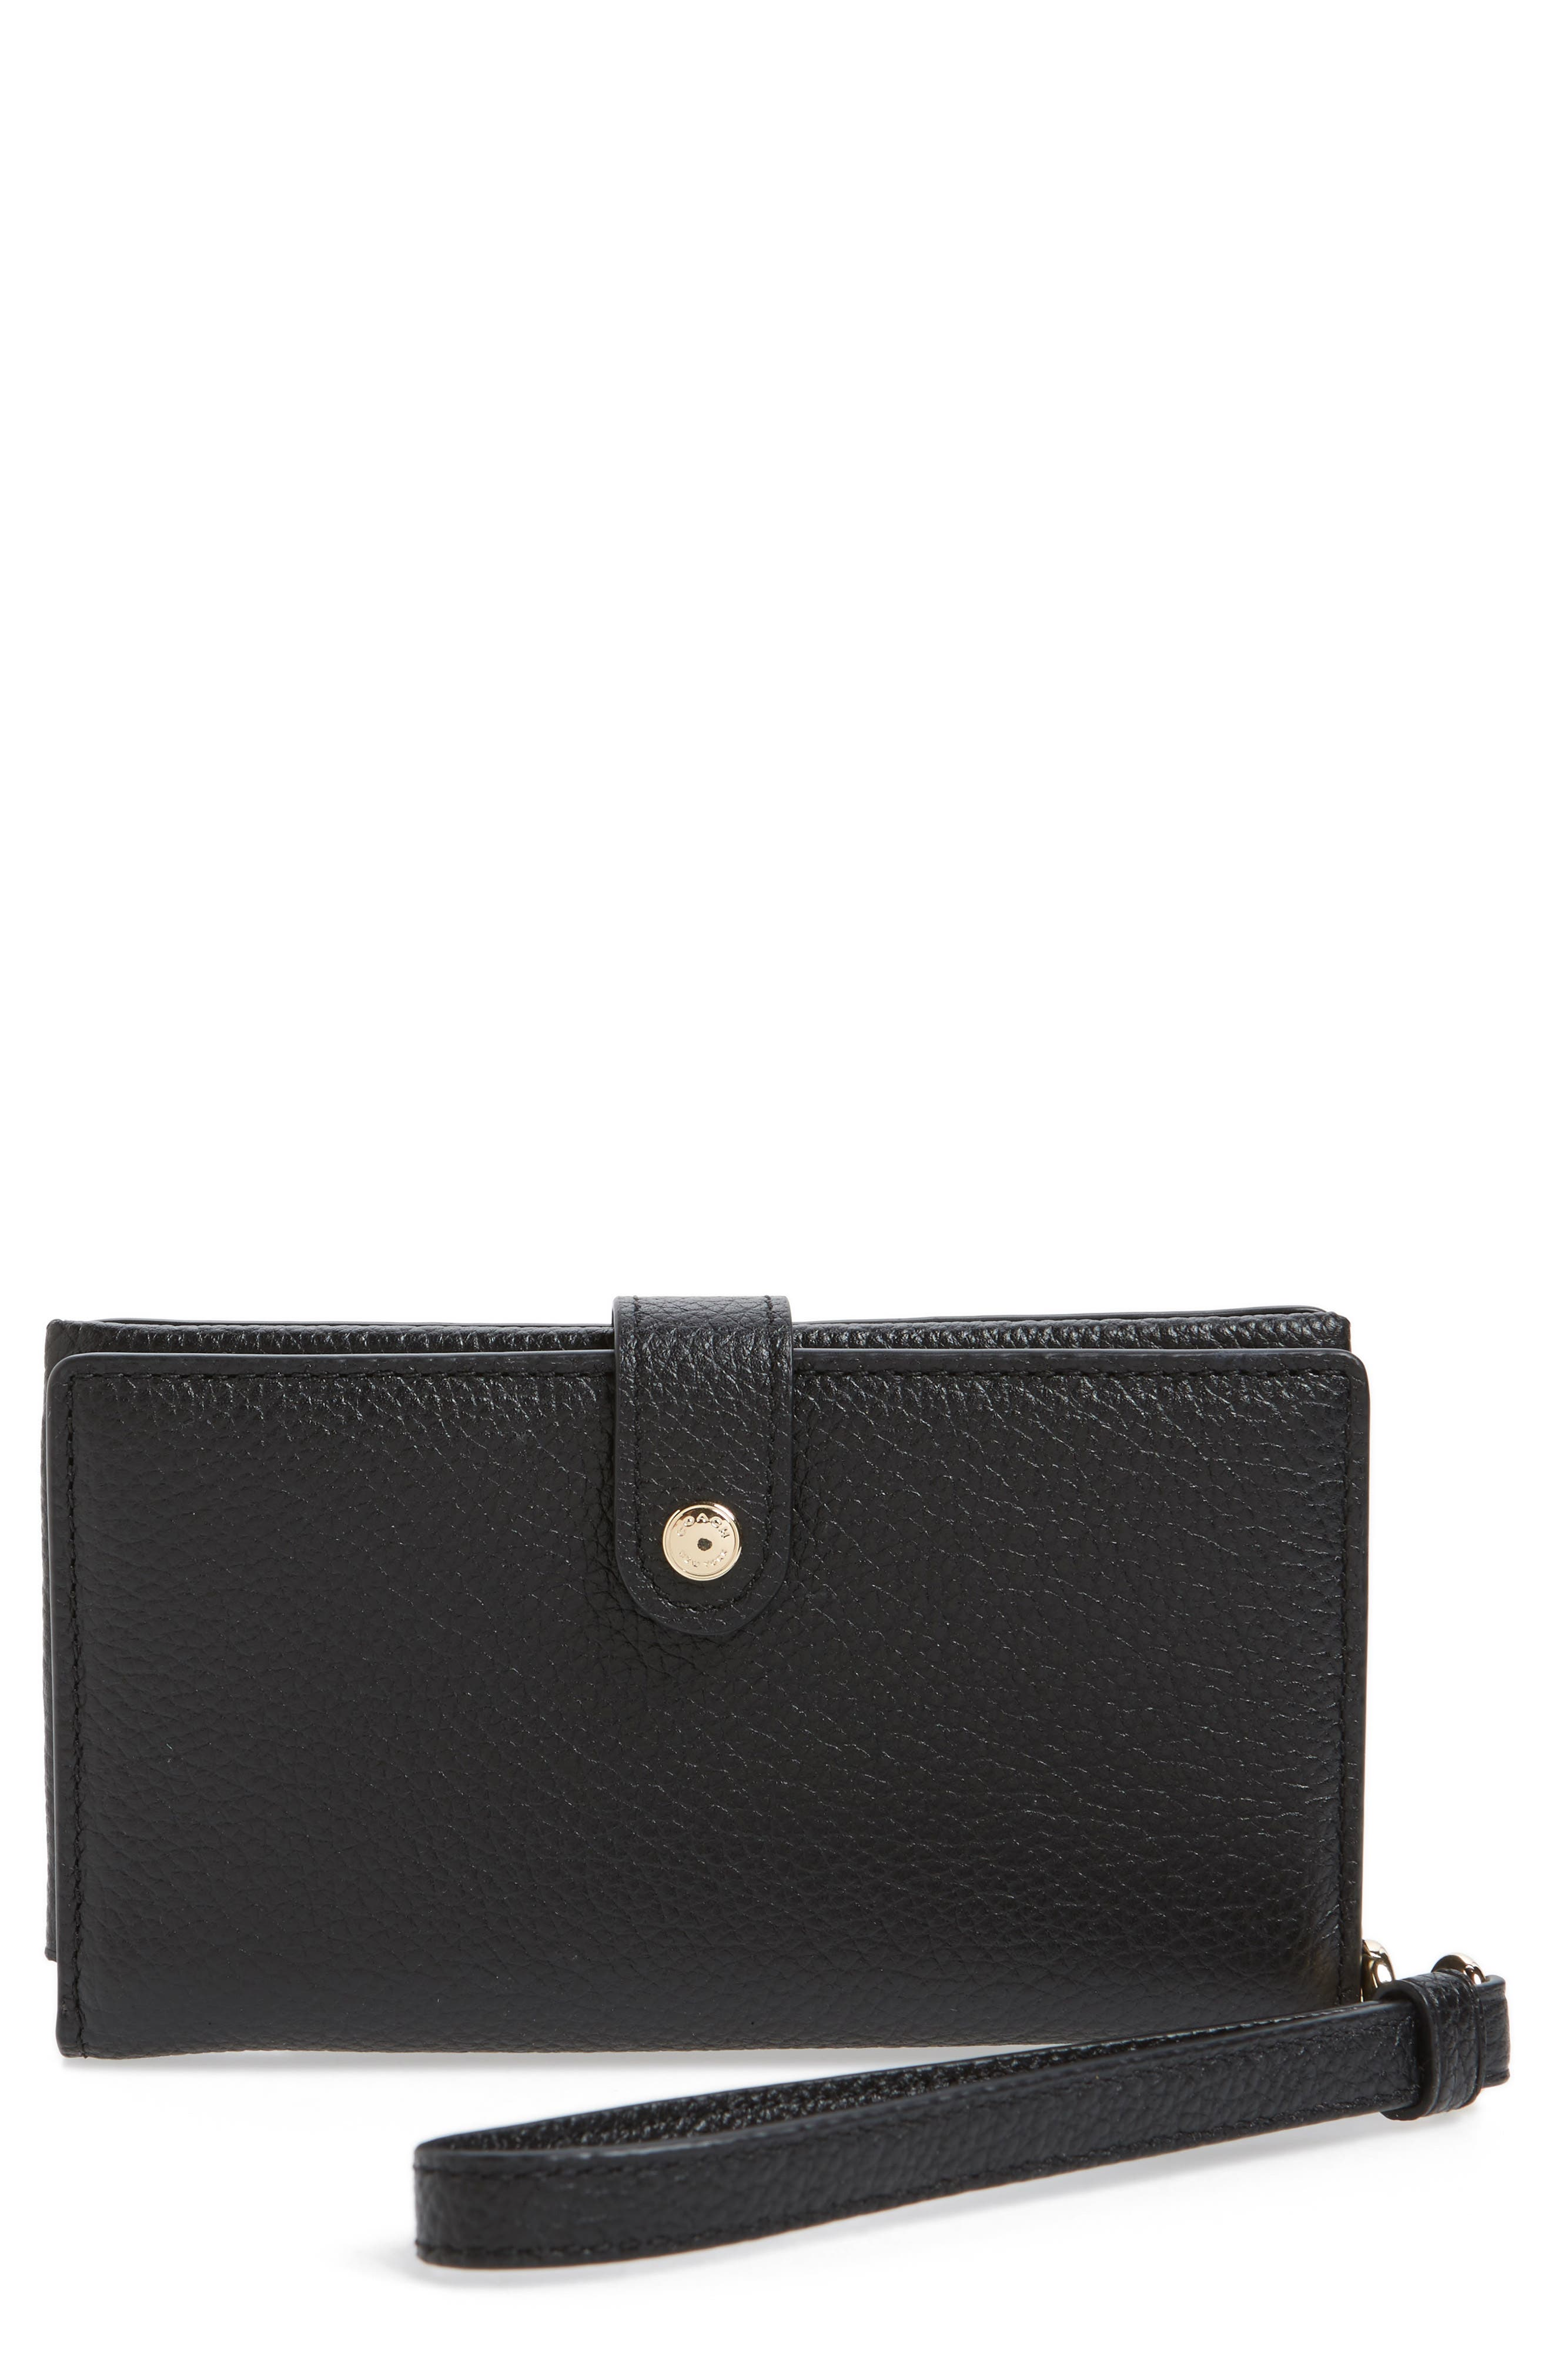 Calfskin Leather Phone Wristlet,                             Main thumbnail 1, color,                             001